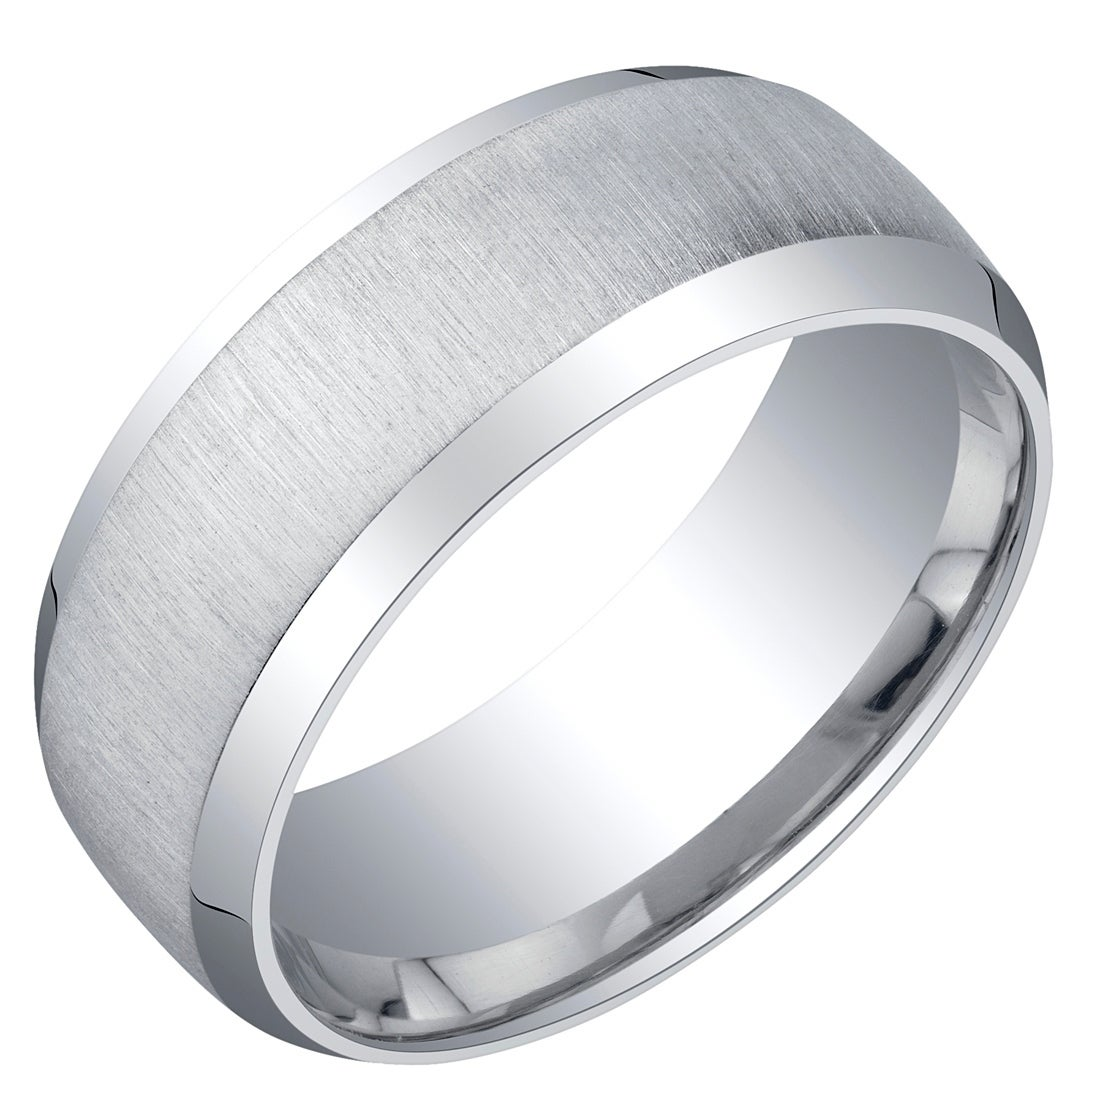 Shop Mens Sterling Silver Beveled Edge Wedding Ring Band In Brushed Matte 8mm Fort Fit On Sale Free Shipping Today Overstock 21703049: Beveled Edge Matte Wedding Ring At Reisefeber.org